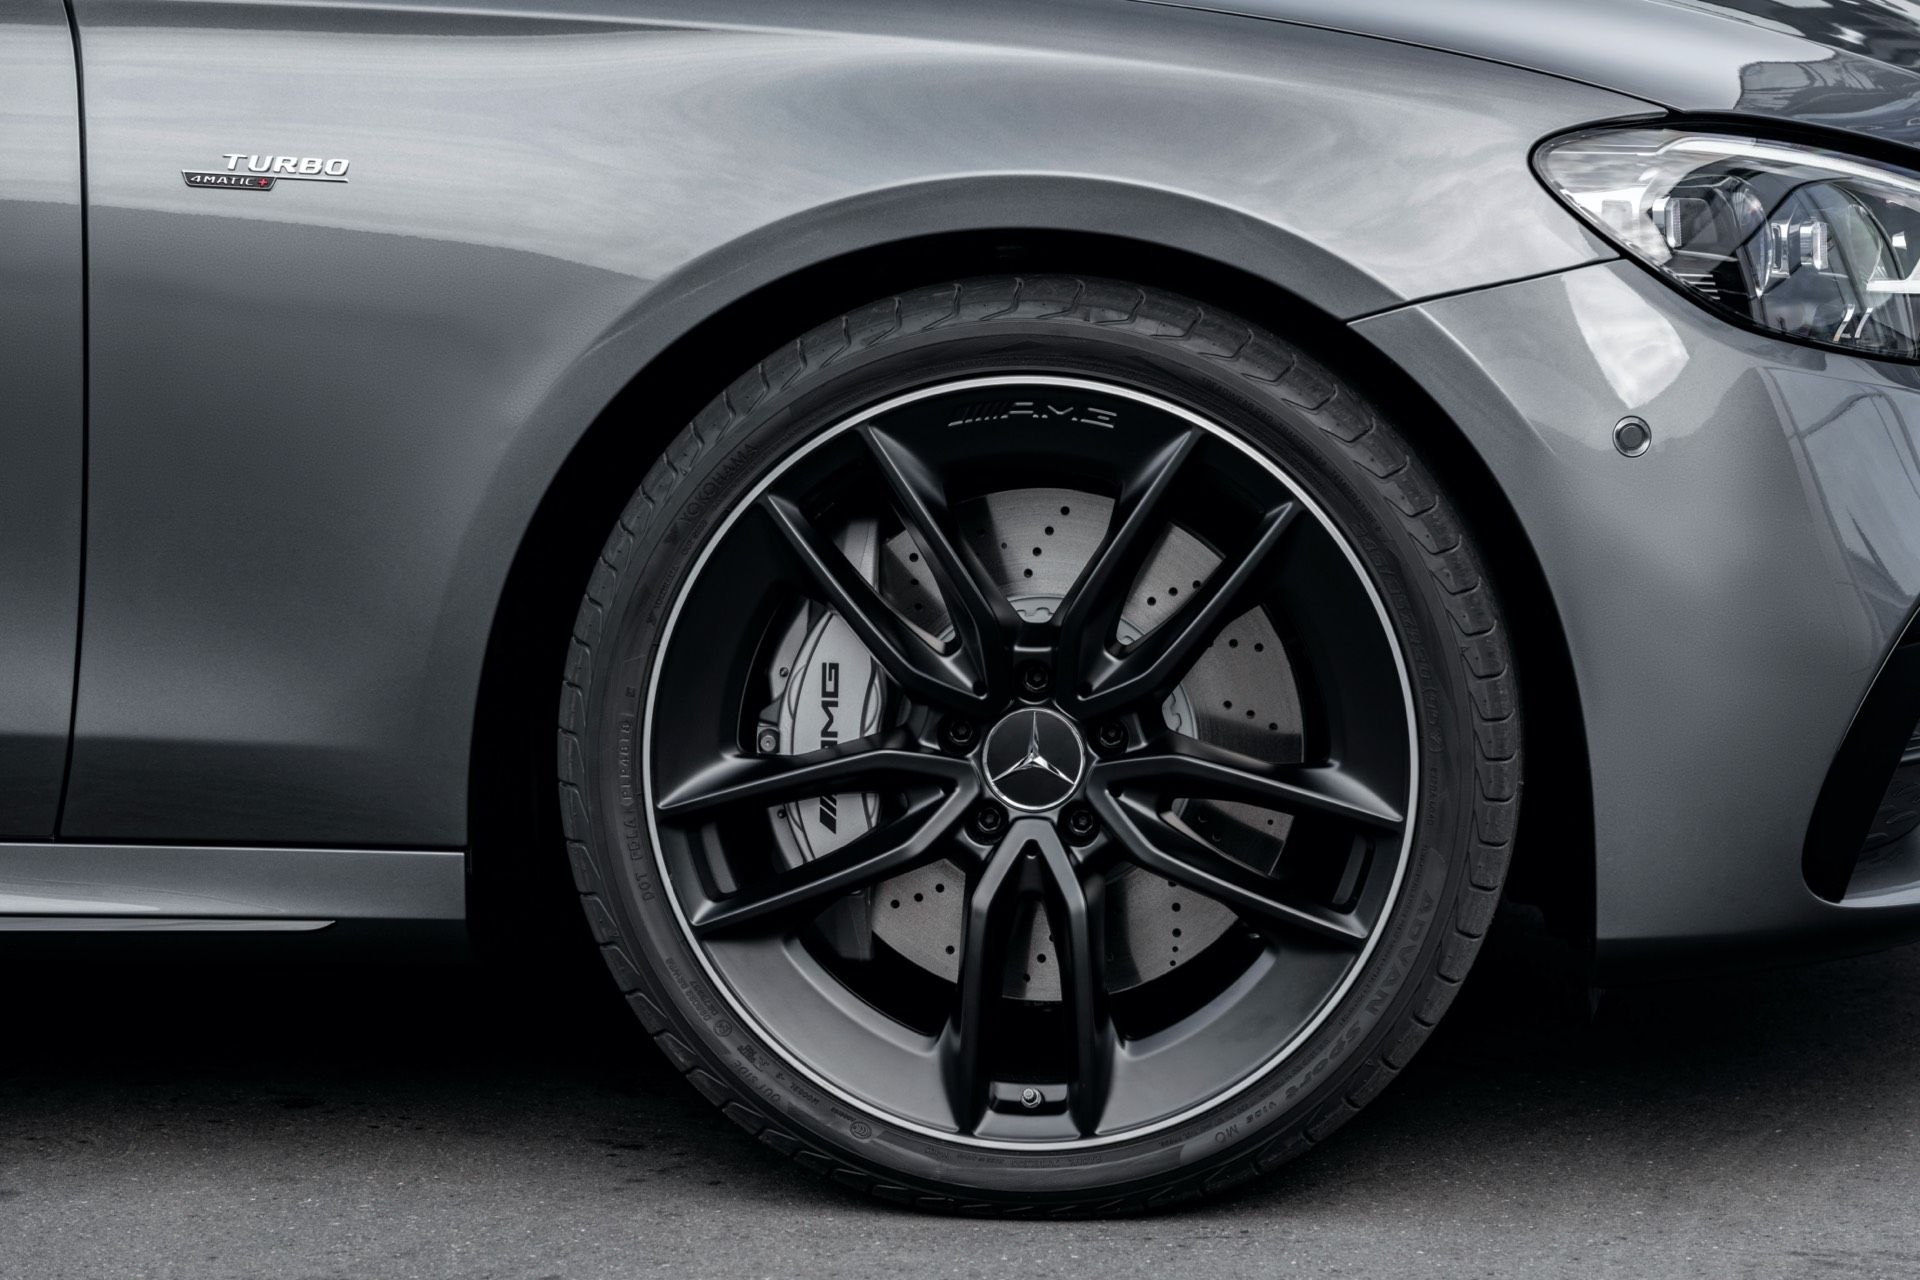 Mercedes-AMG E 53 Sedan Facelift Wheels